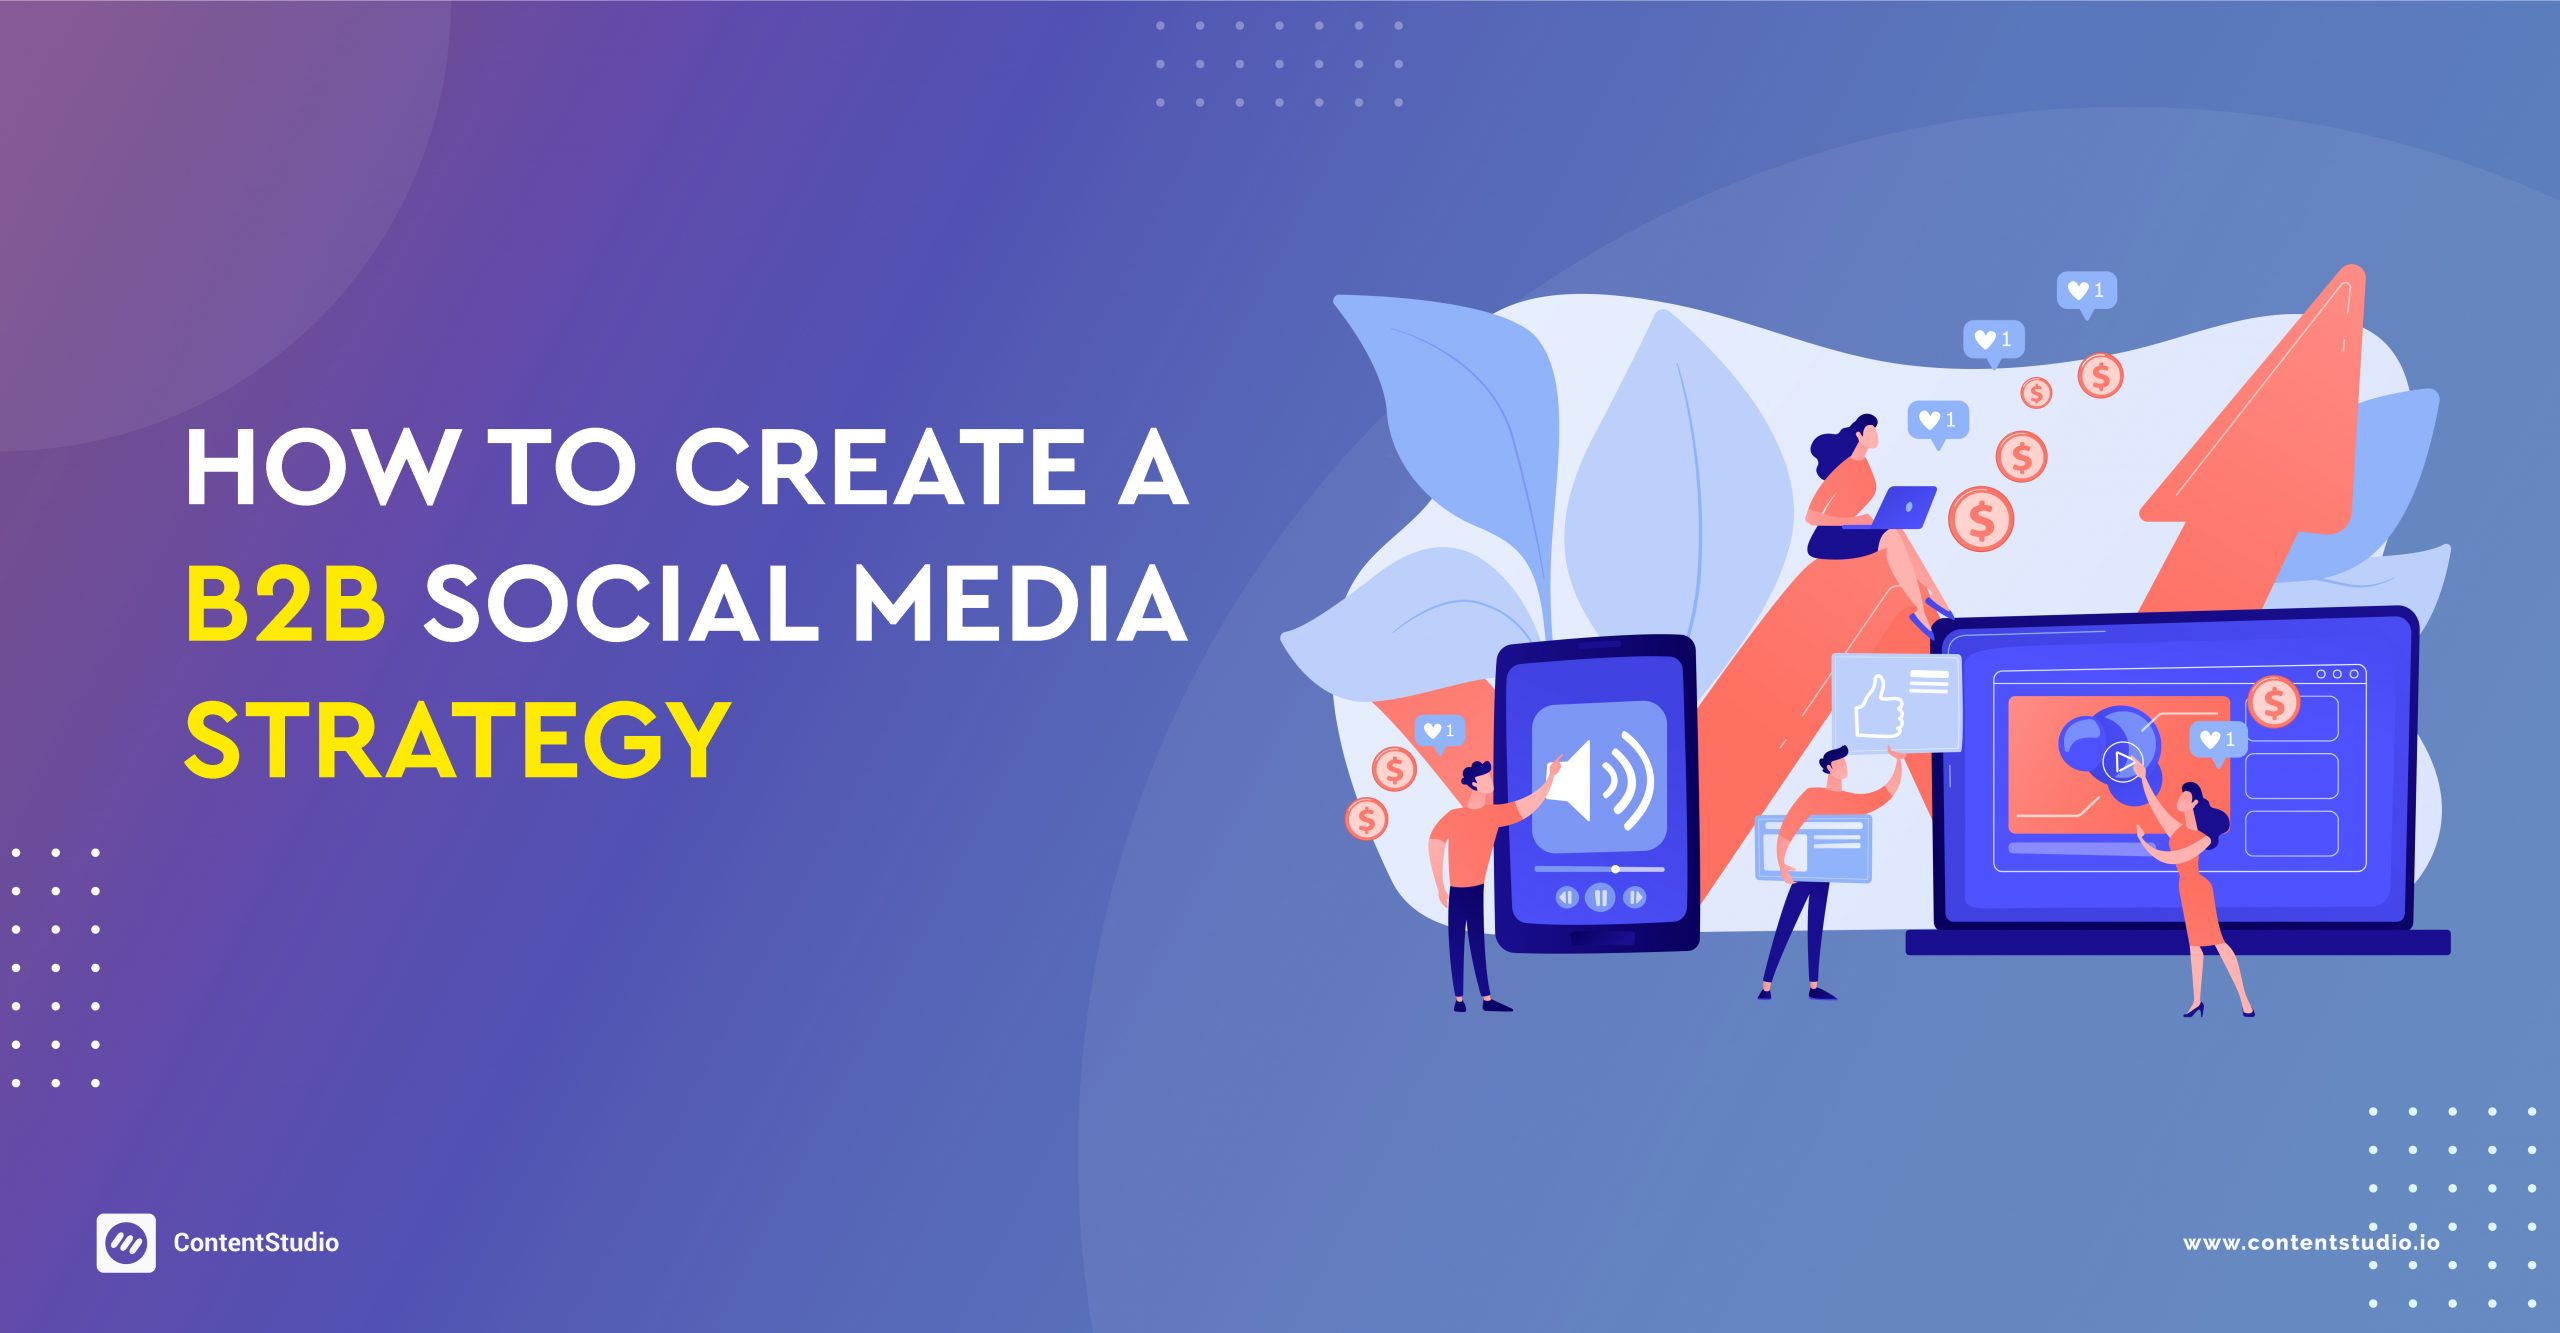 How to create a b2b social media strategy